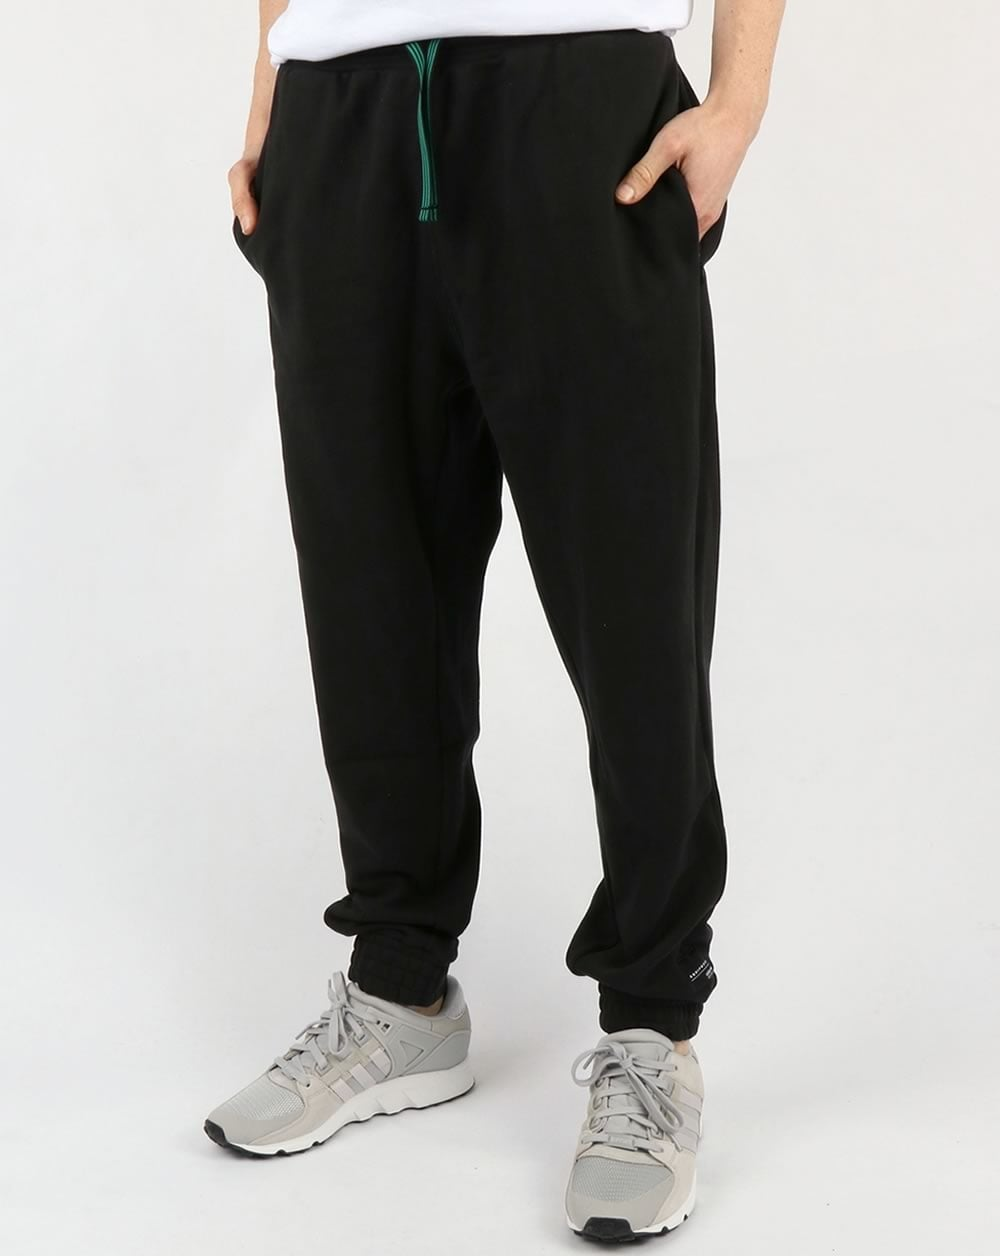 bdffe82bbebc adidas Originals Adidas Originals EQT Knit Track Bottoms Black